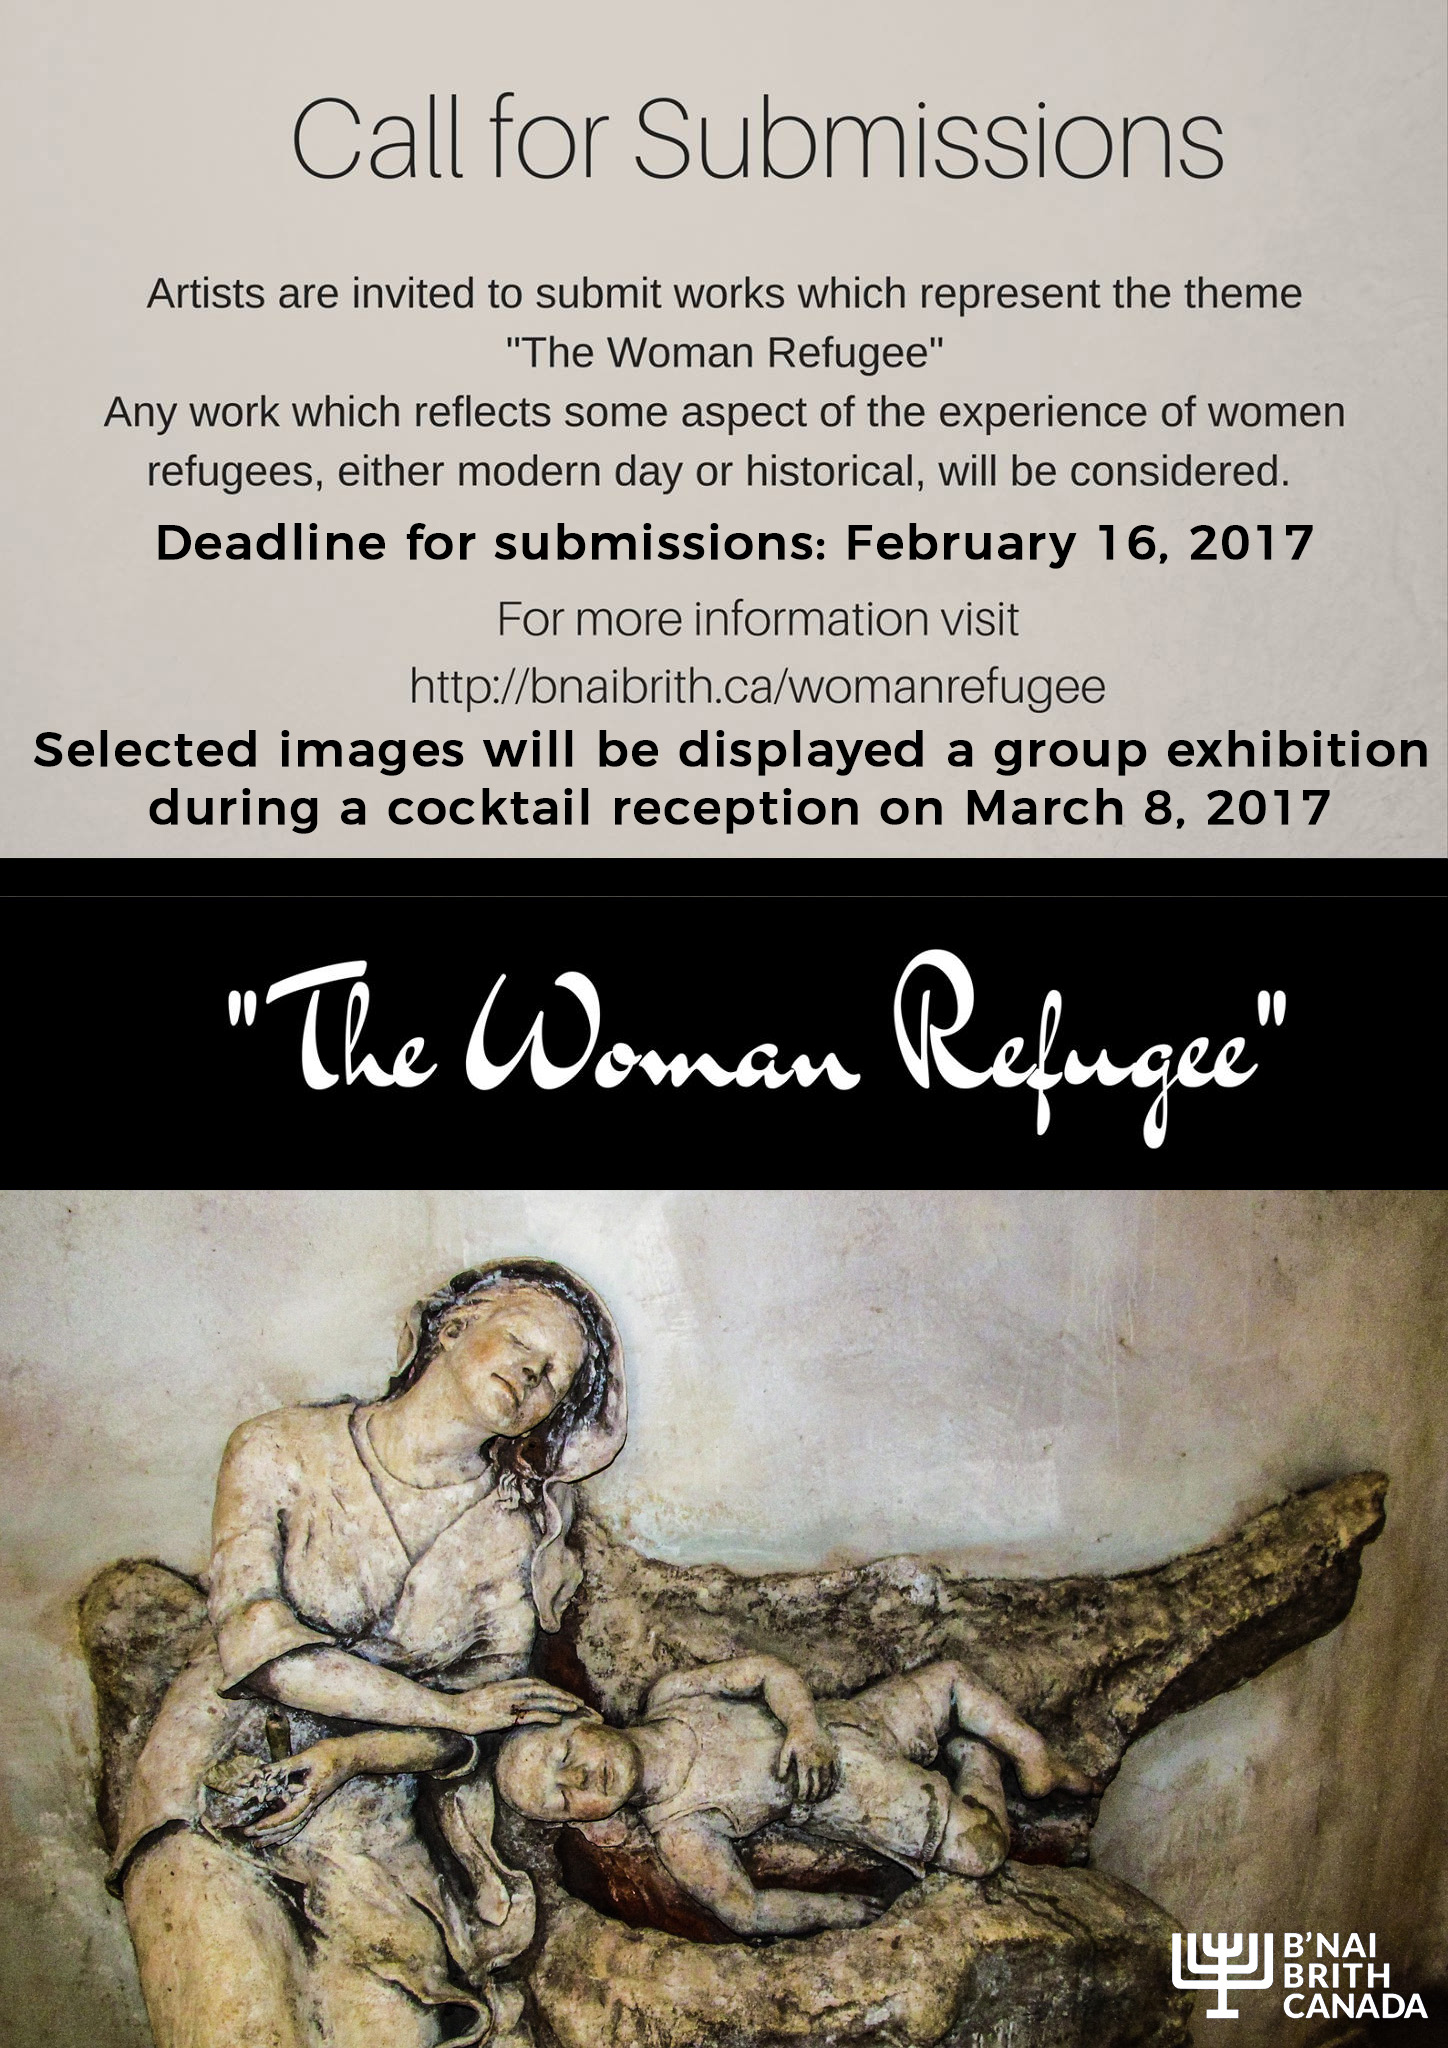 Woman_Refugee_Poster_copy.jpg